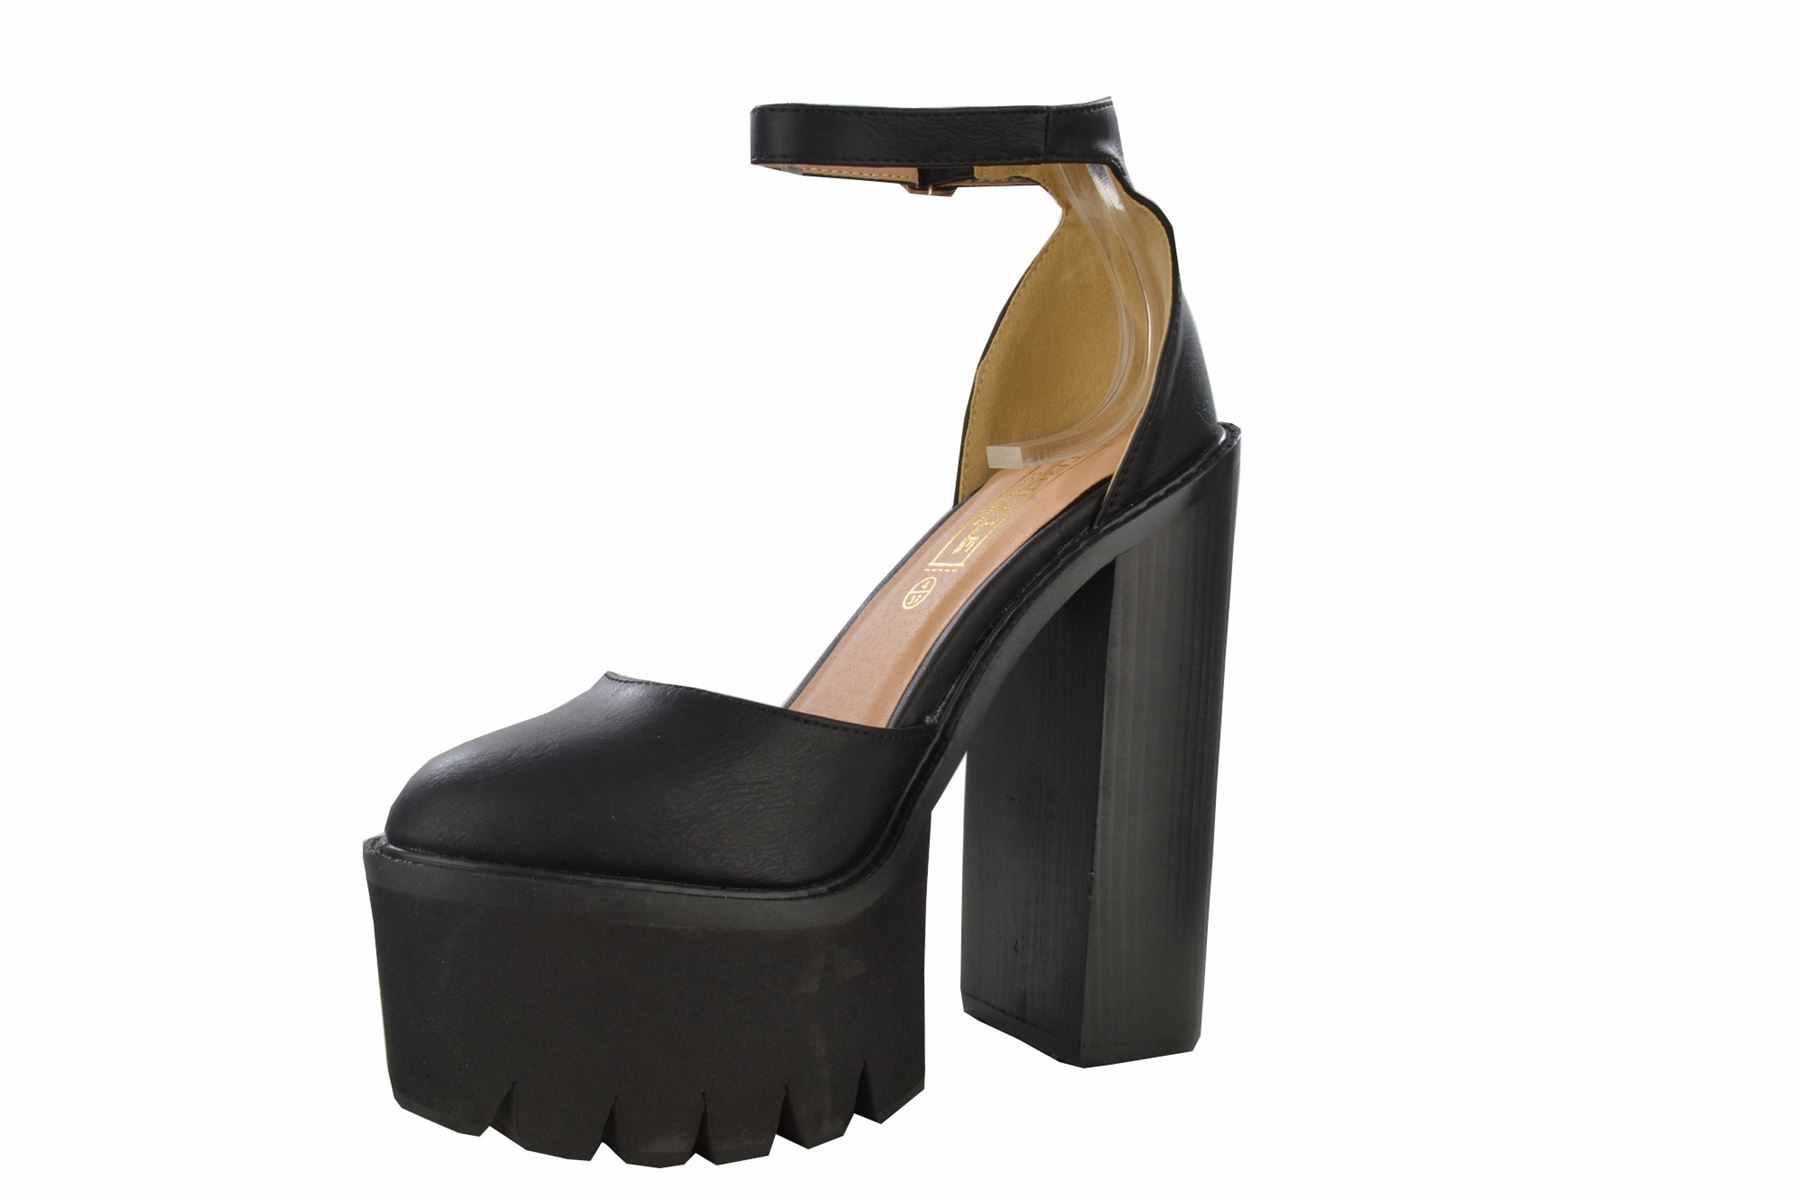 Womens Chunky High Heel Cleated Tractor Sole Ankle Strap Round Toe Sandals Shoes